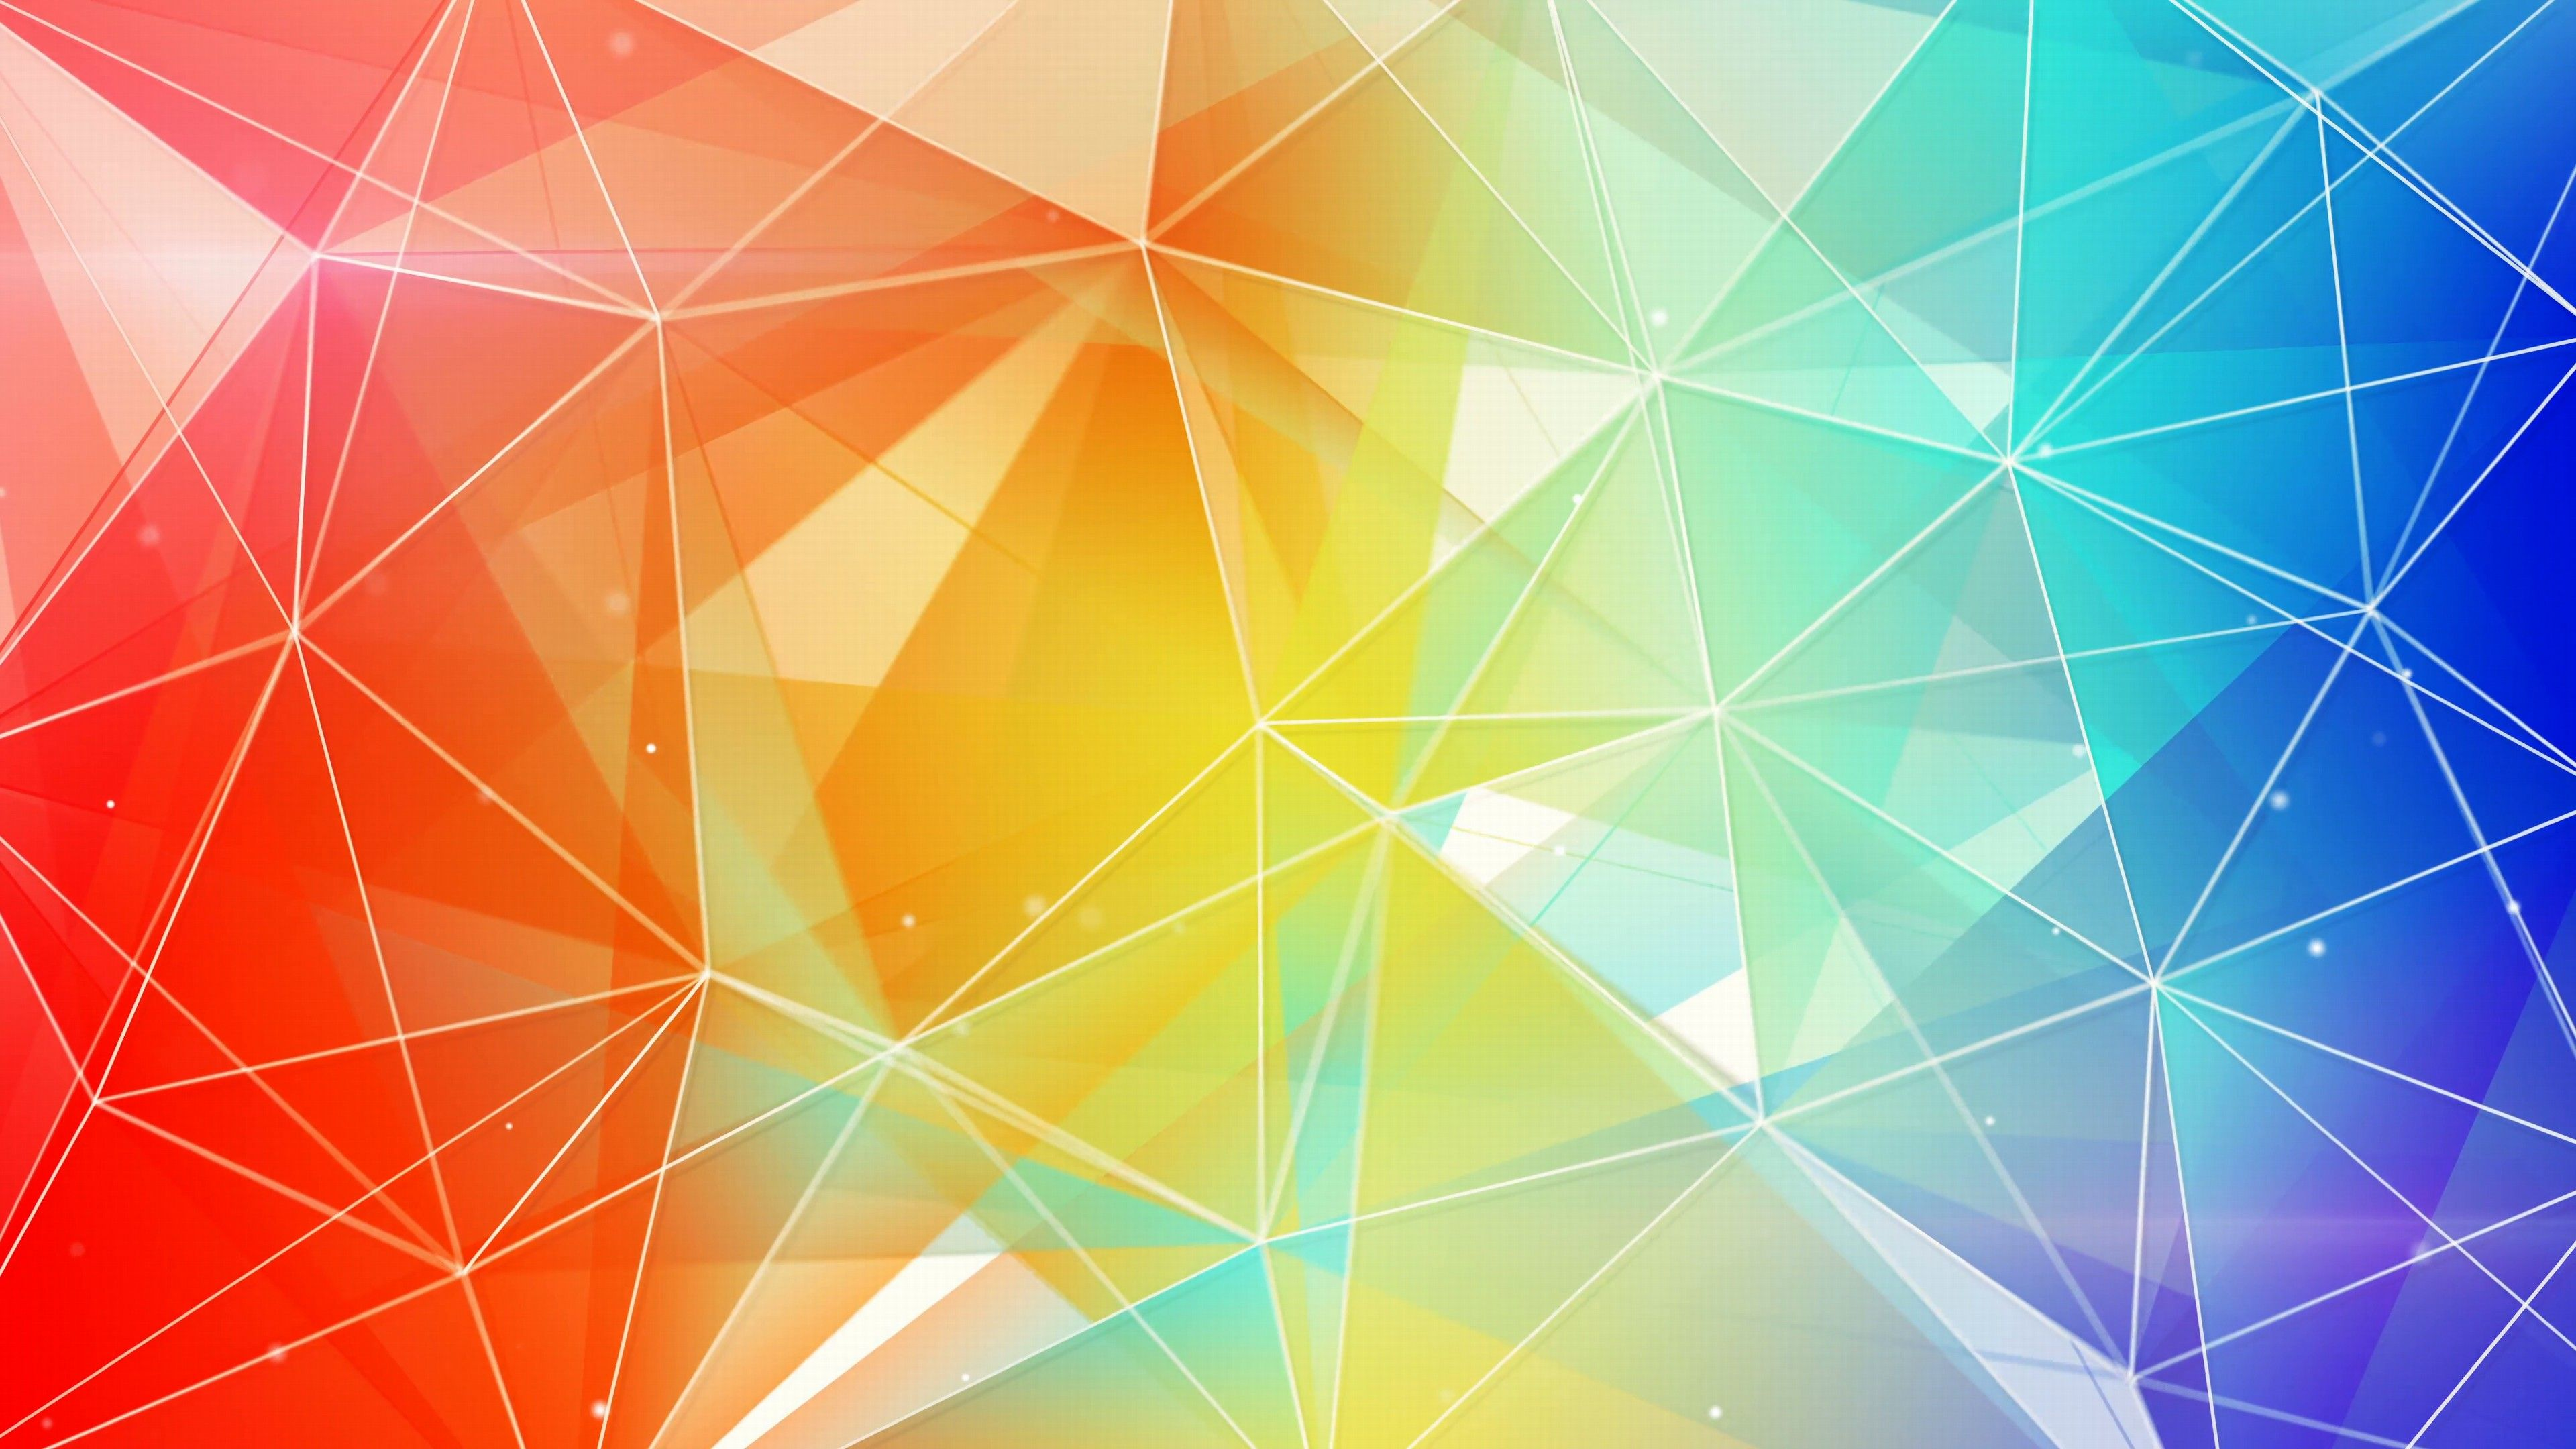 Free Colorful Geometric Wallpaper: Top Free Colorful Backgrounds